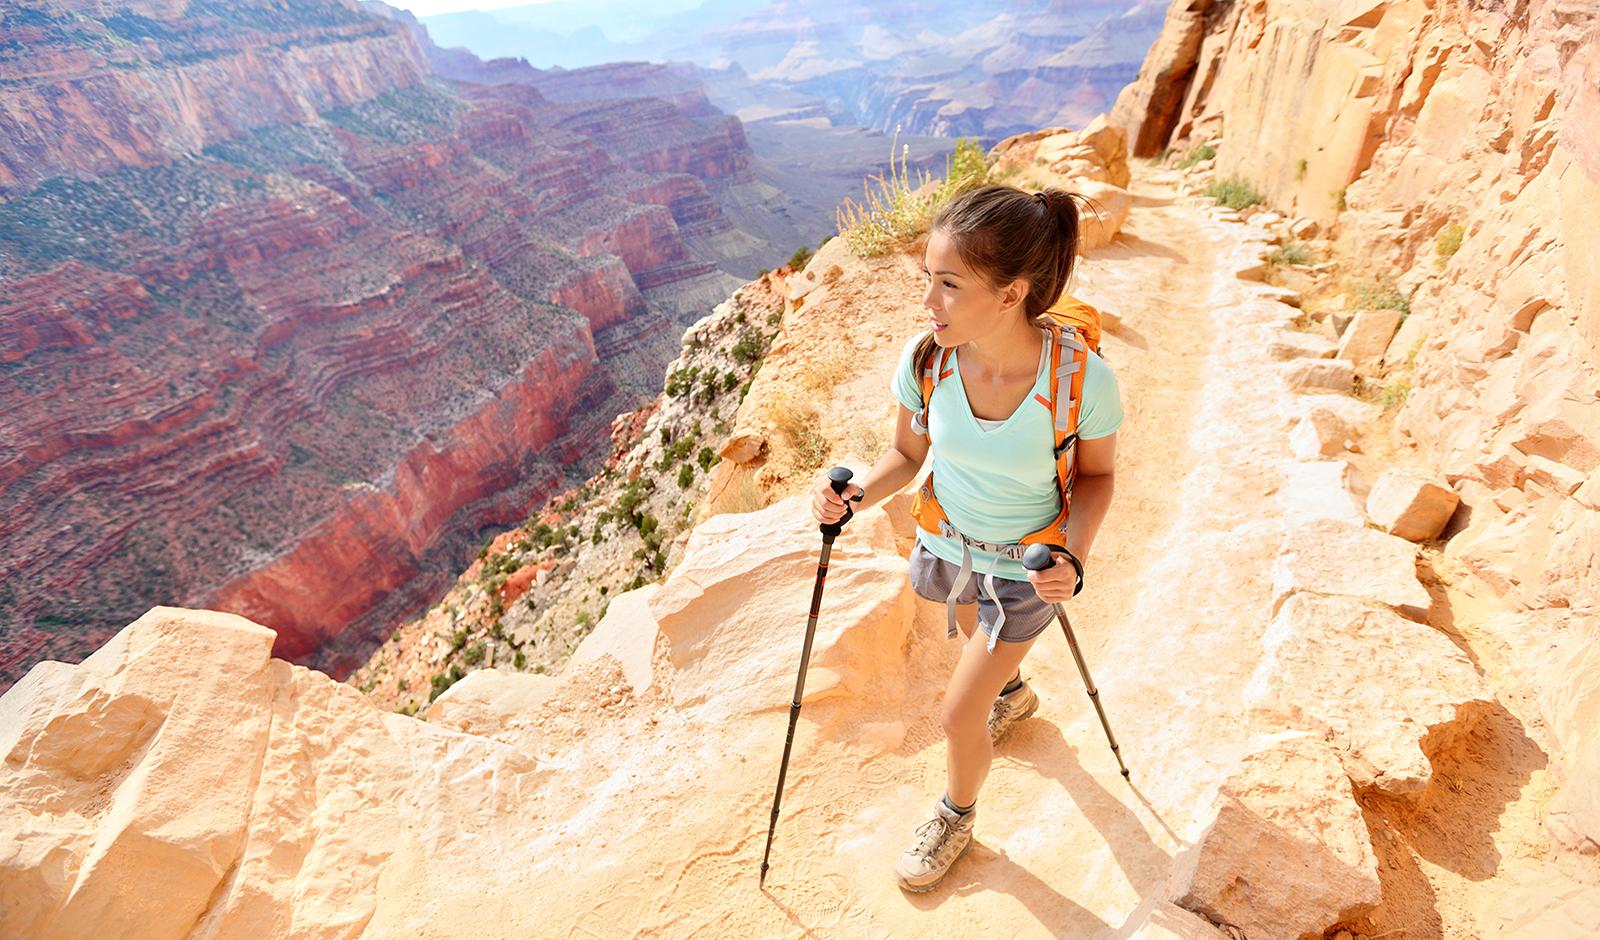 how-to-get-energized-in-the-summer-heat-main-image-woman-hiking-in-desert